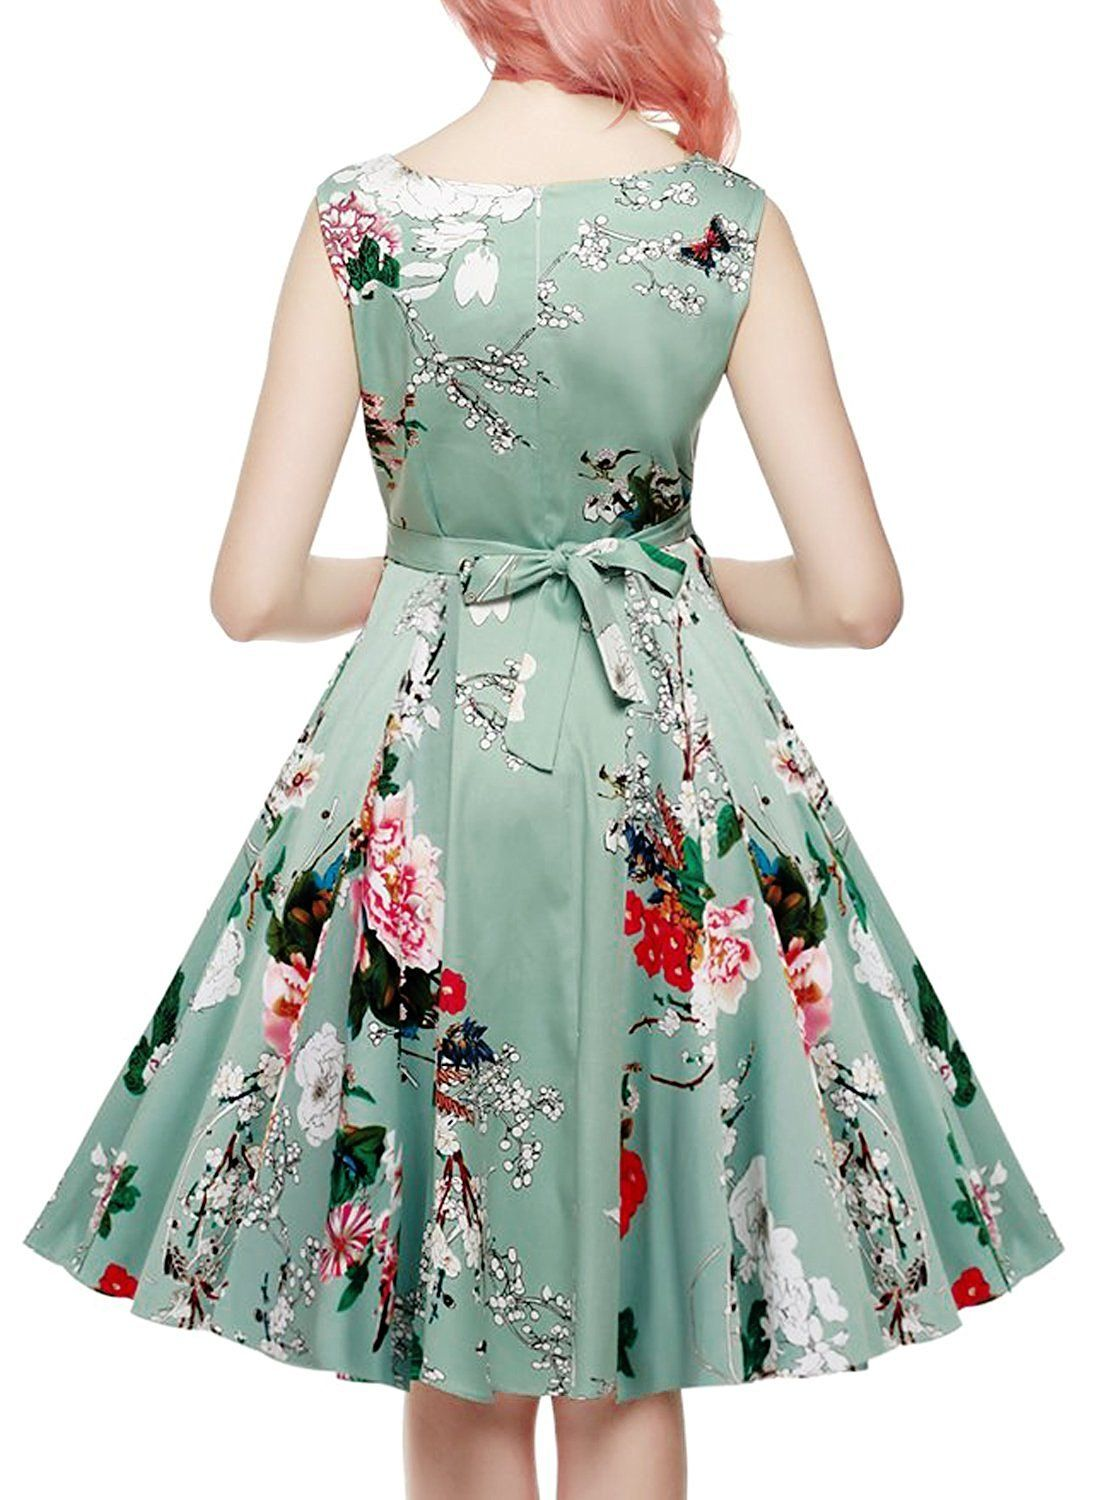 Ihot Vintage 1950s Floral Spring Garden Party Picnic Dress Party Cocktail Dress For Women Light Gre Spring Fashion Dresses Vintage Tea Dress Floral Party Dress [ 1500 x 1100 Pixel ]